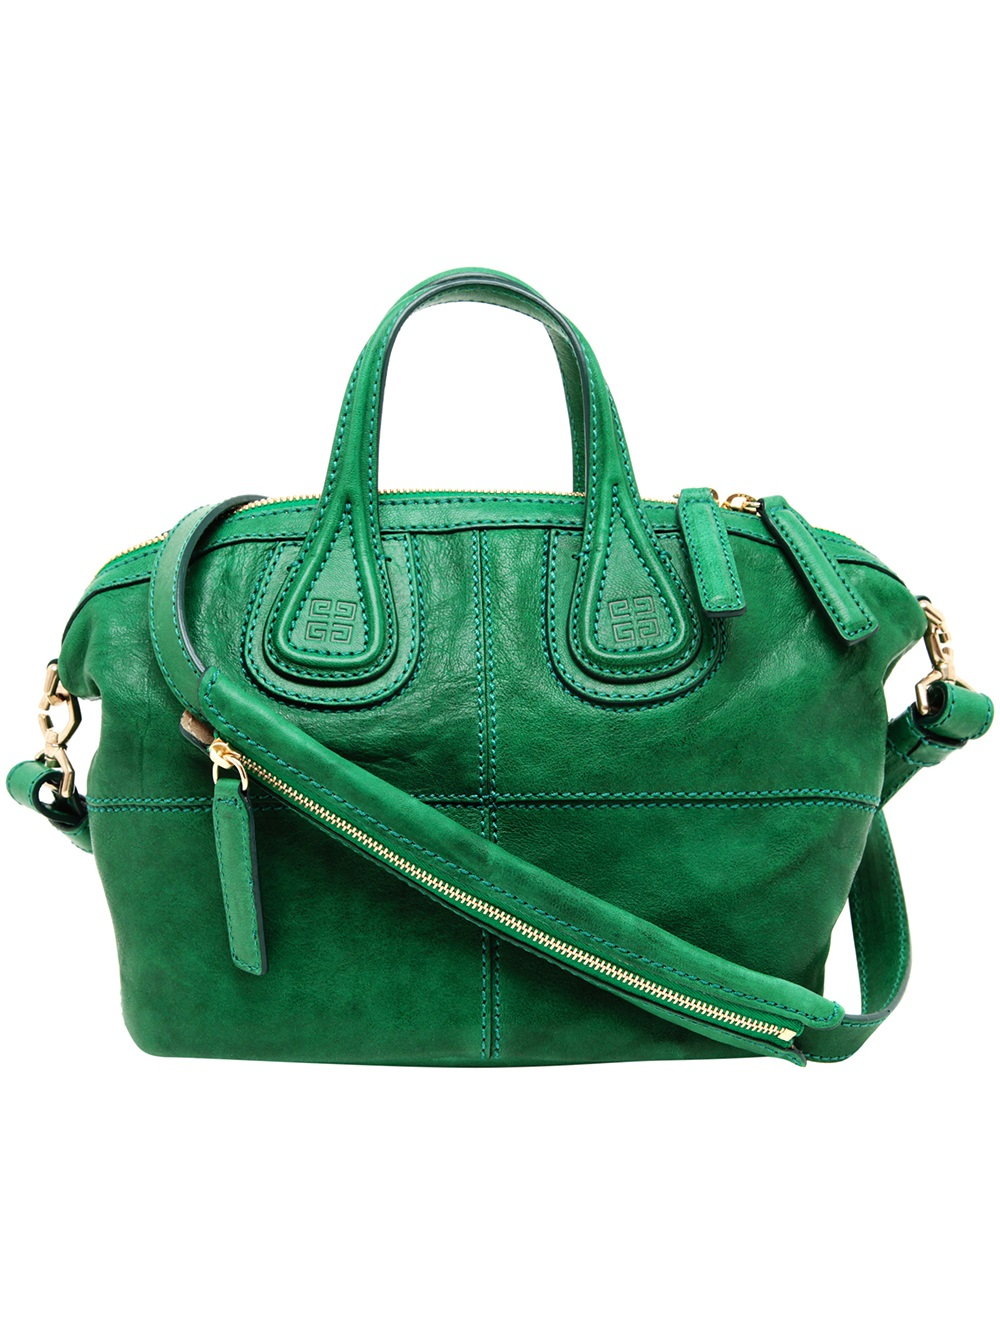 5f6564139f08 Lyst - Givenchy Nightingale Micro Leather Bag in Green